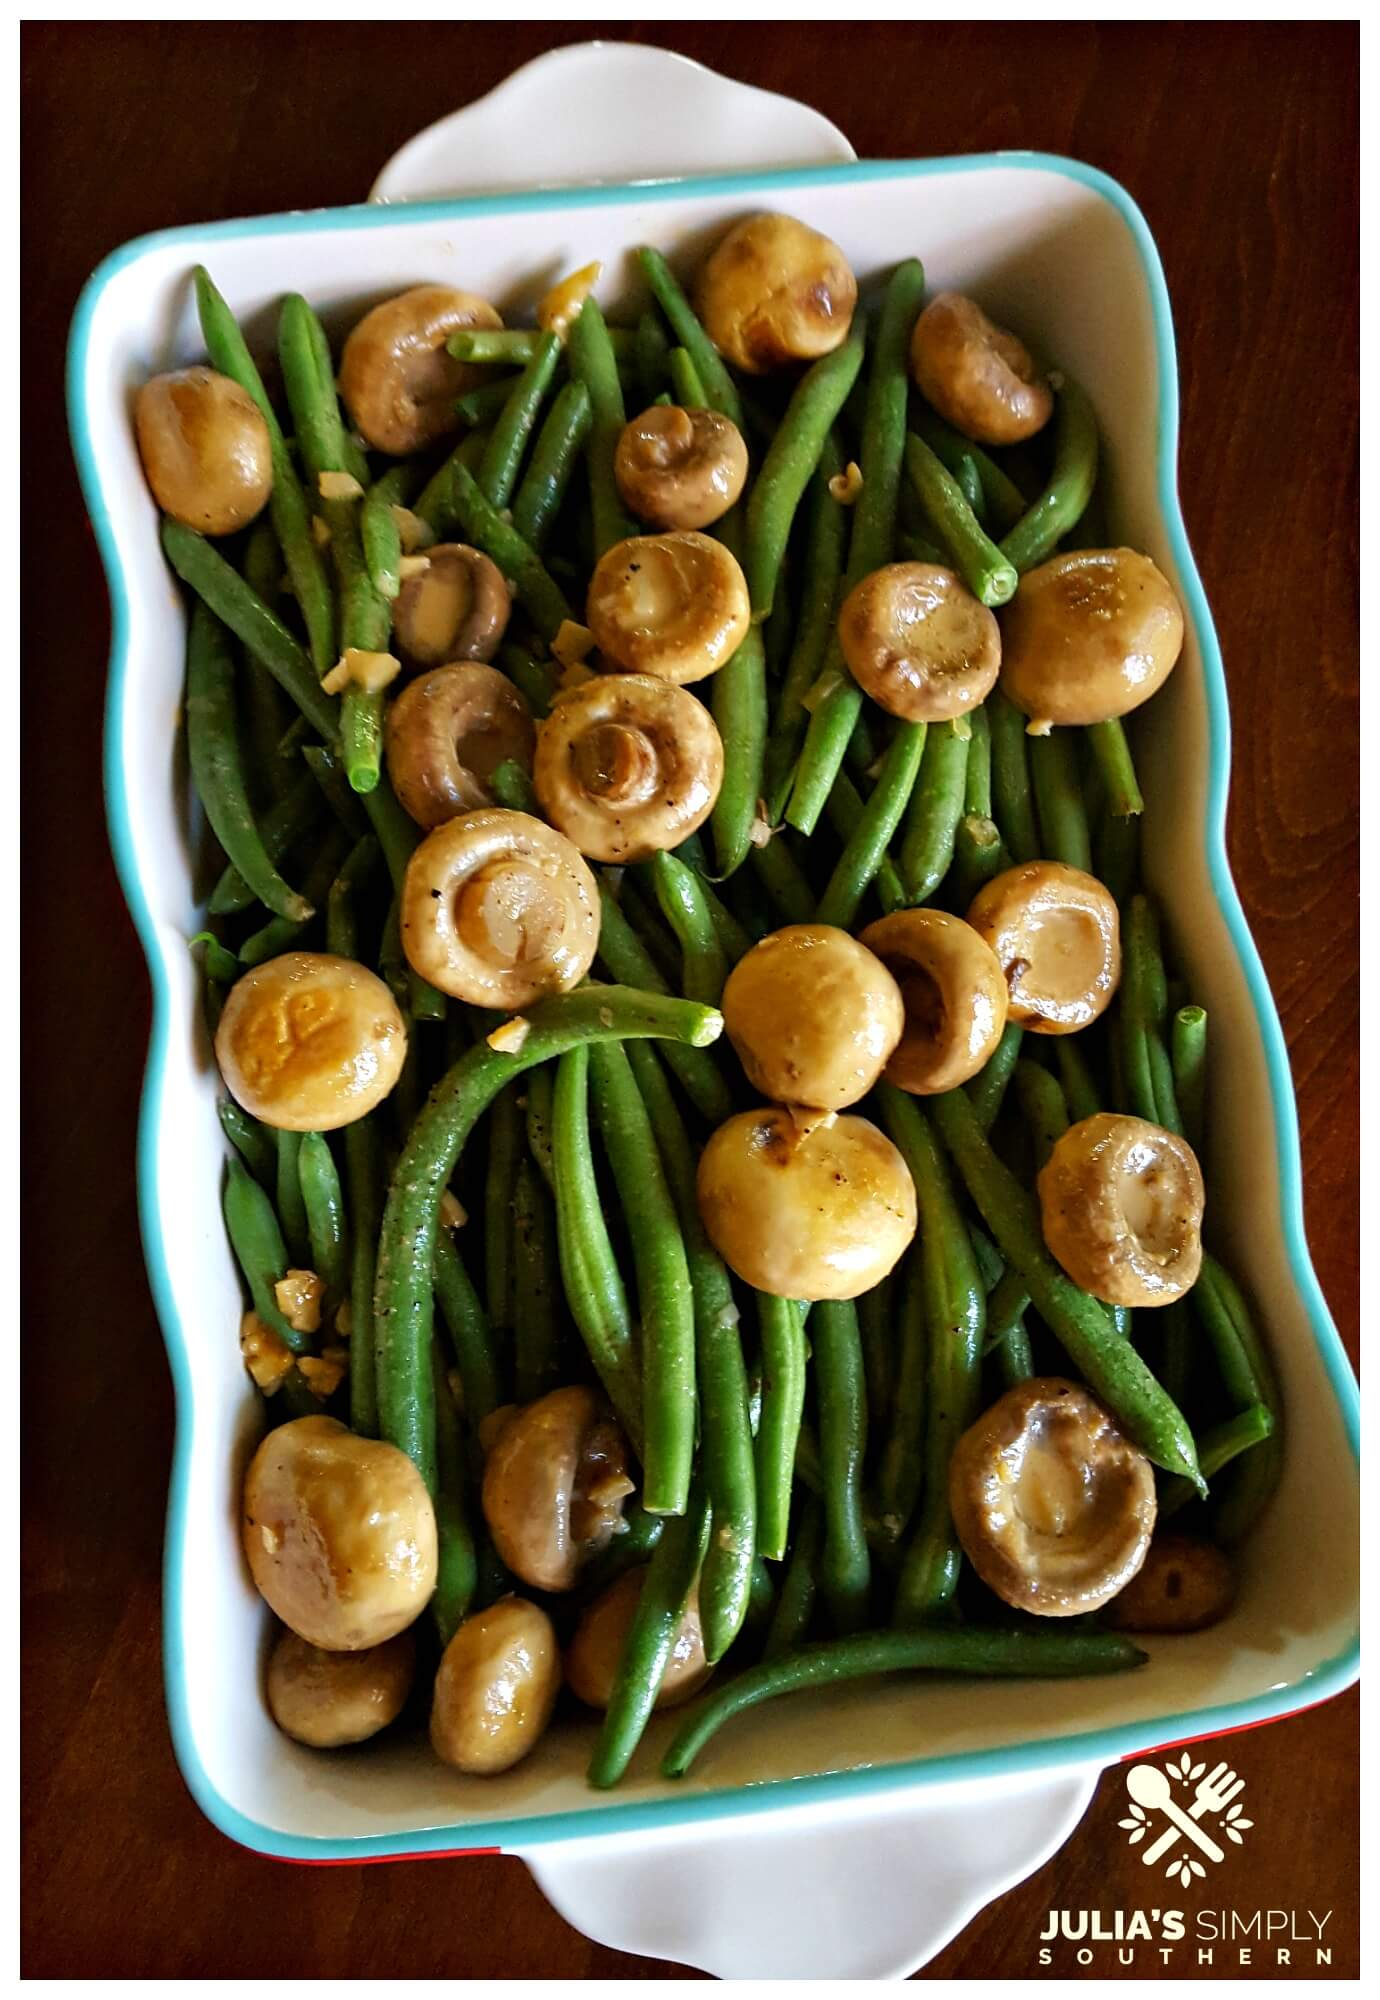 Thanksgiving Recipes Side Dish - Fresh green bean casserole with mushrooms and garlic (no canned soups)